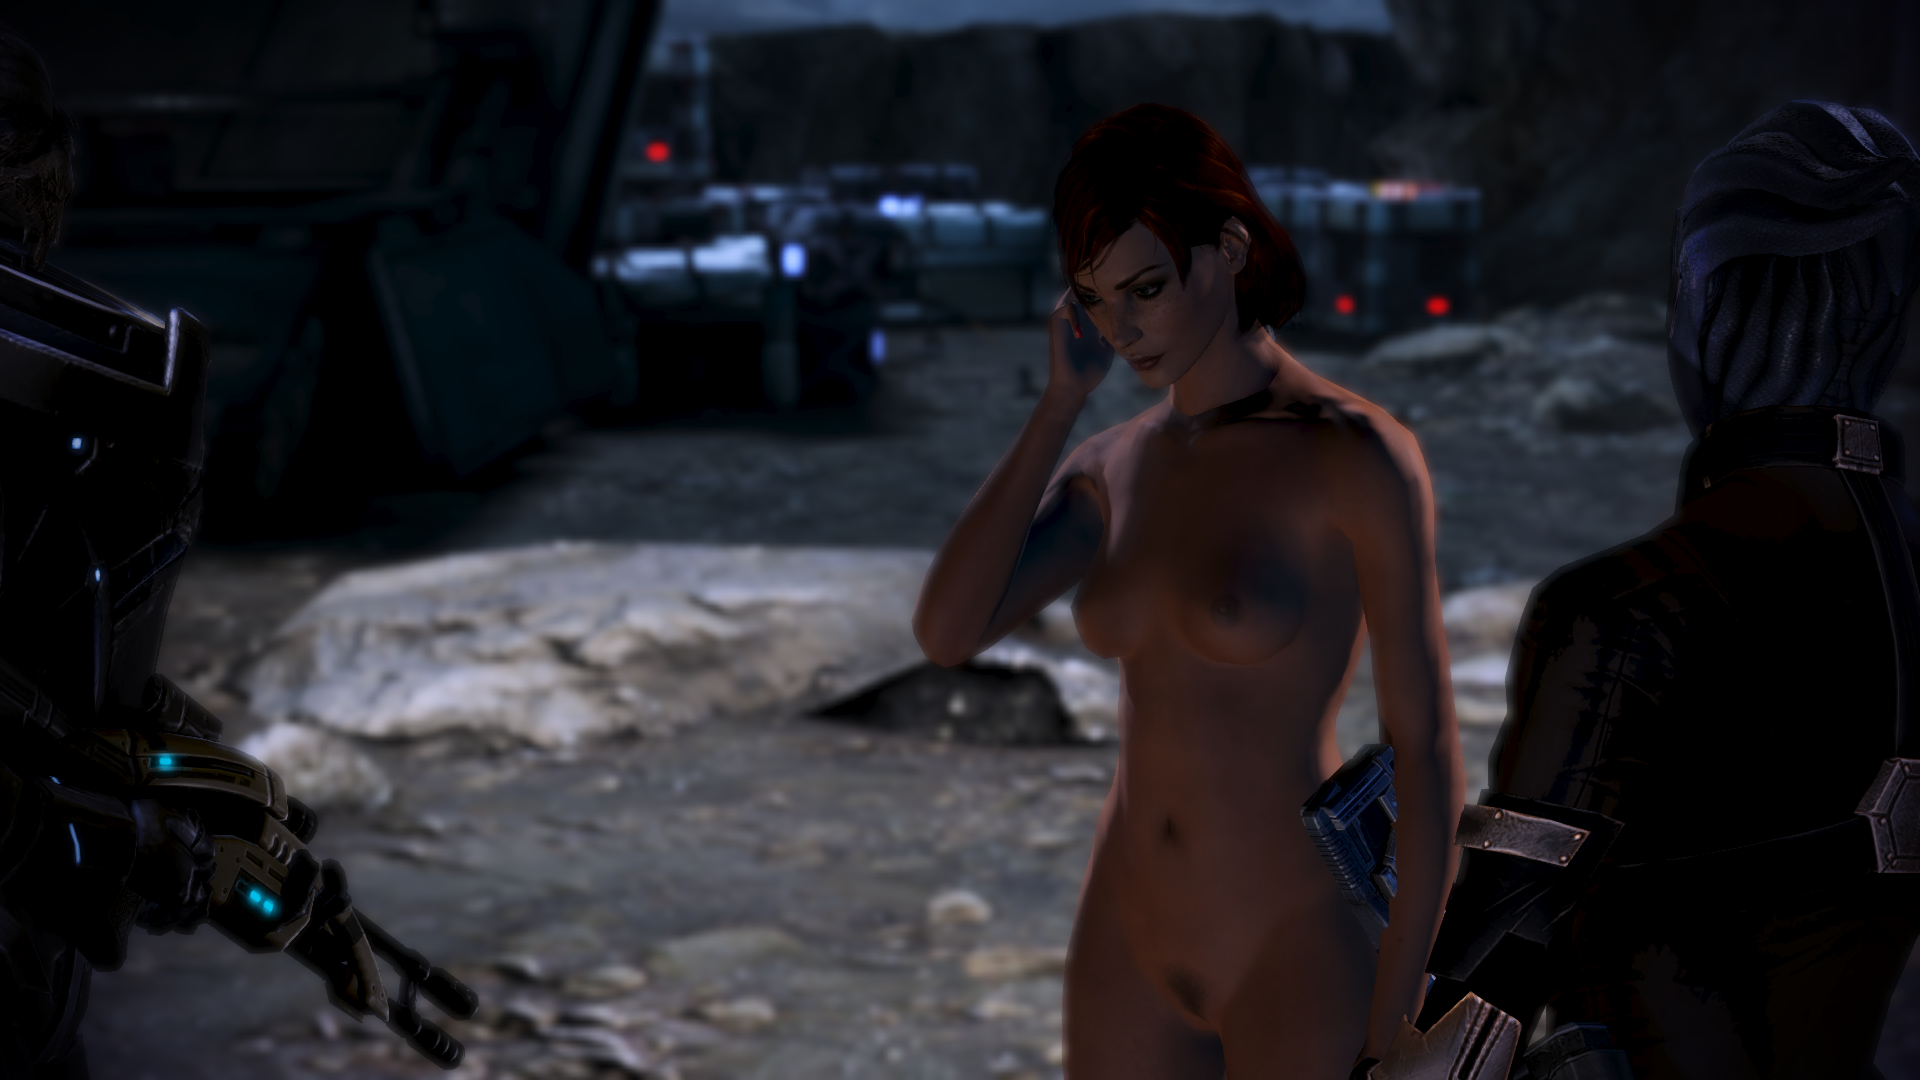 Mass effect 2 sex mod exploited images